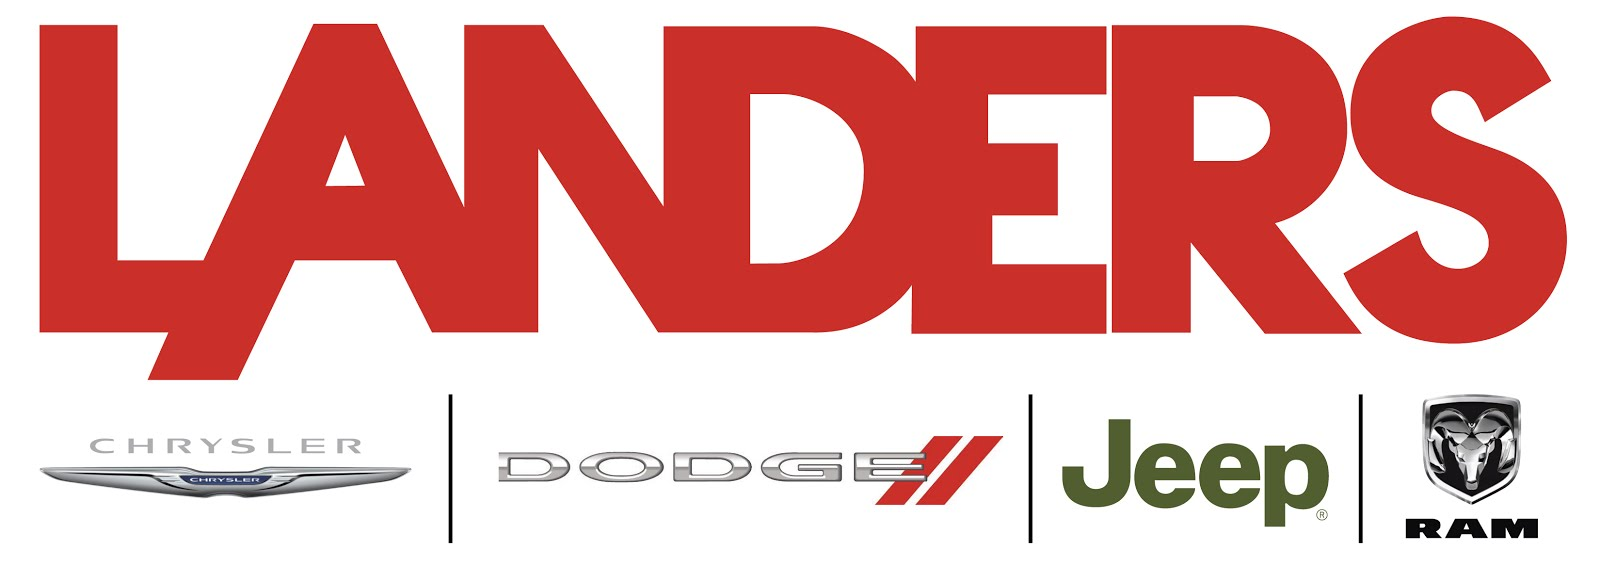 Landers Dodge Chrysler Jeep Ram